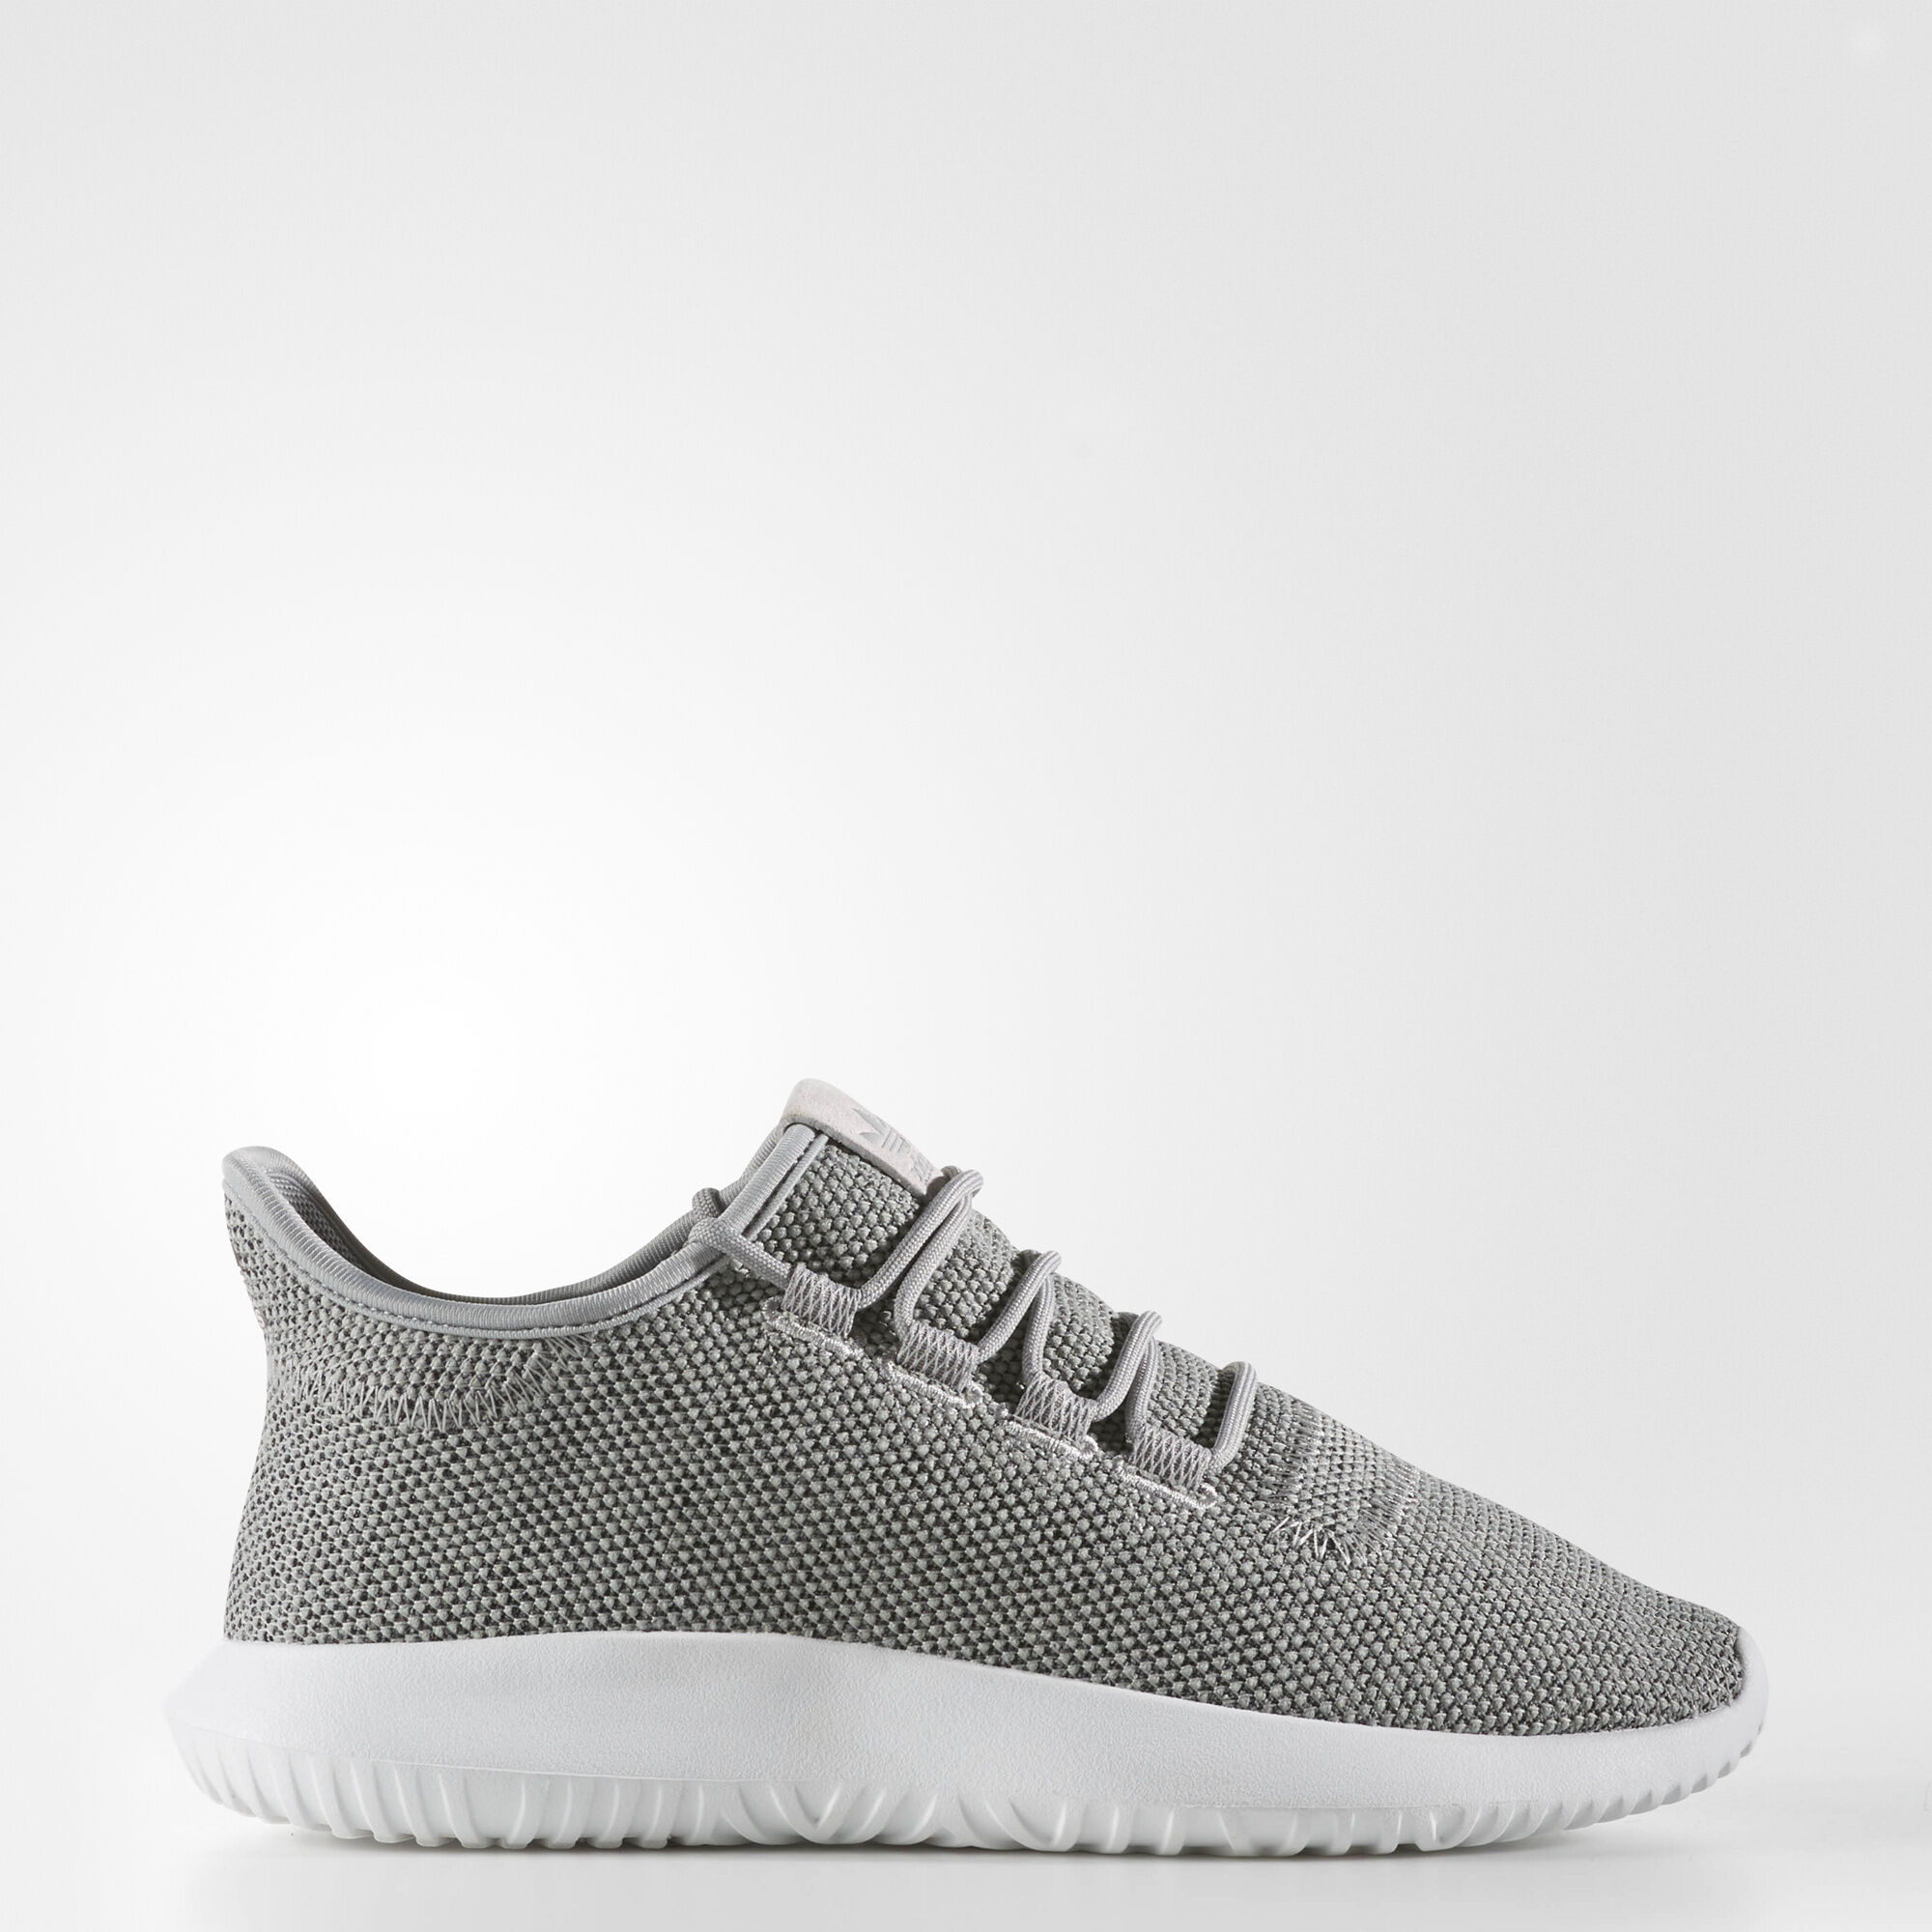 Adidas Tubular Grey Heather